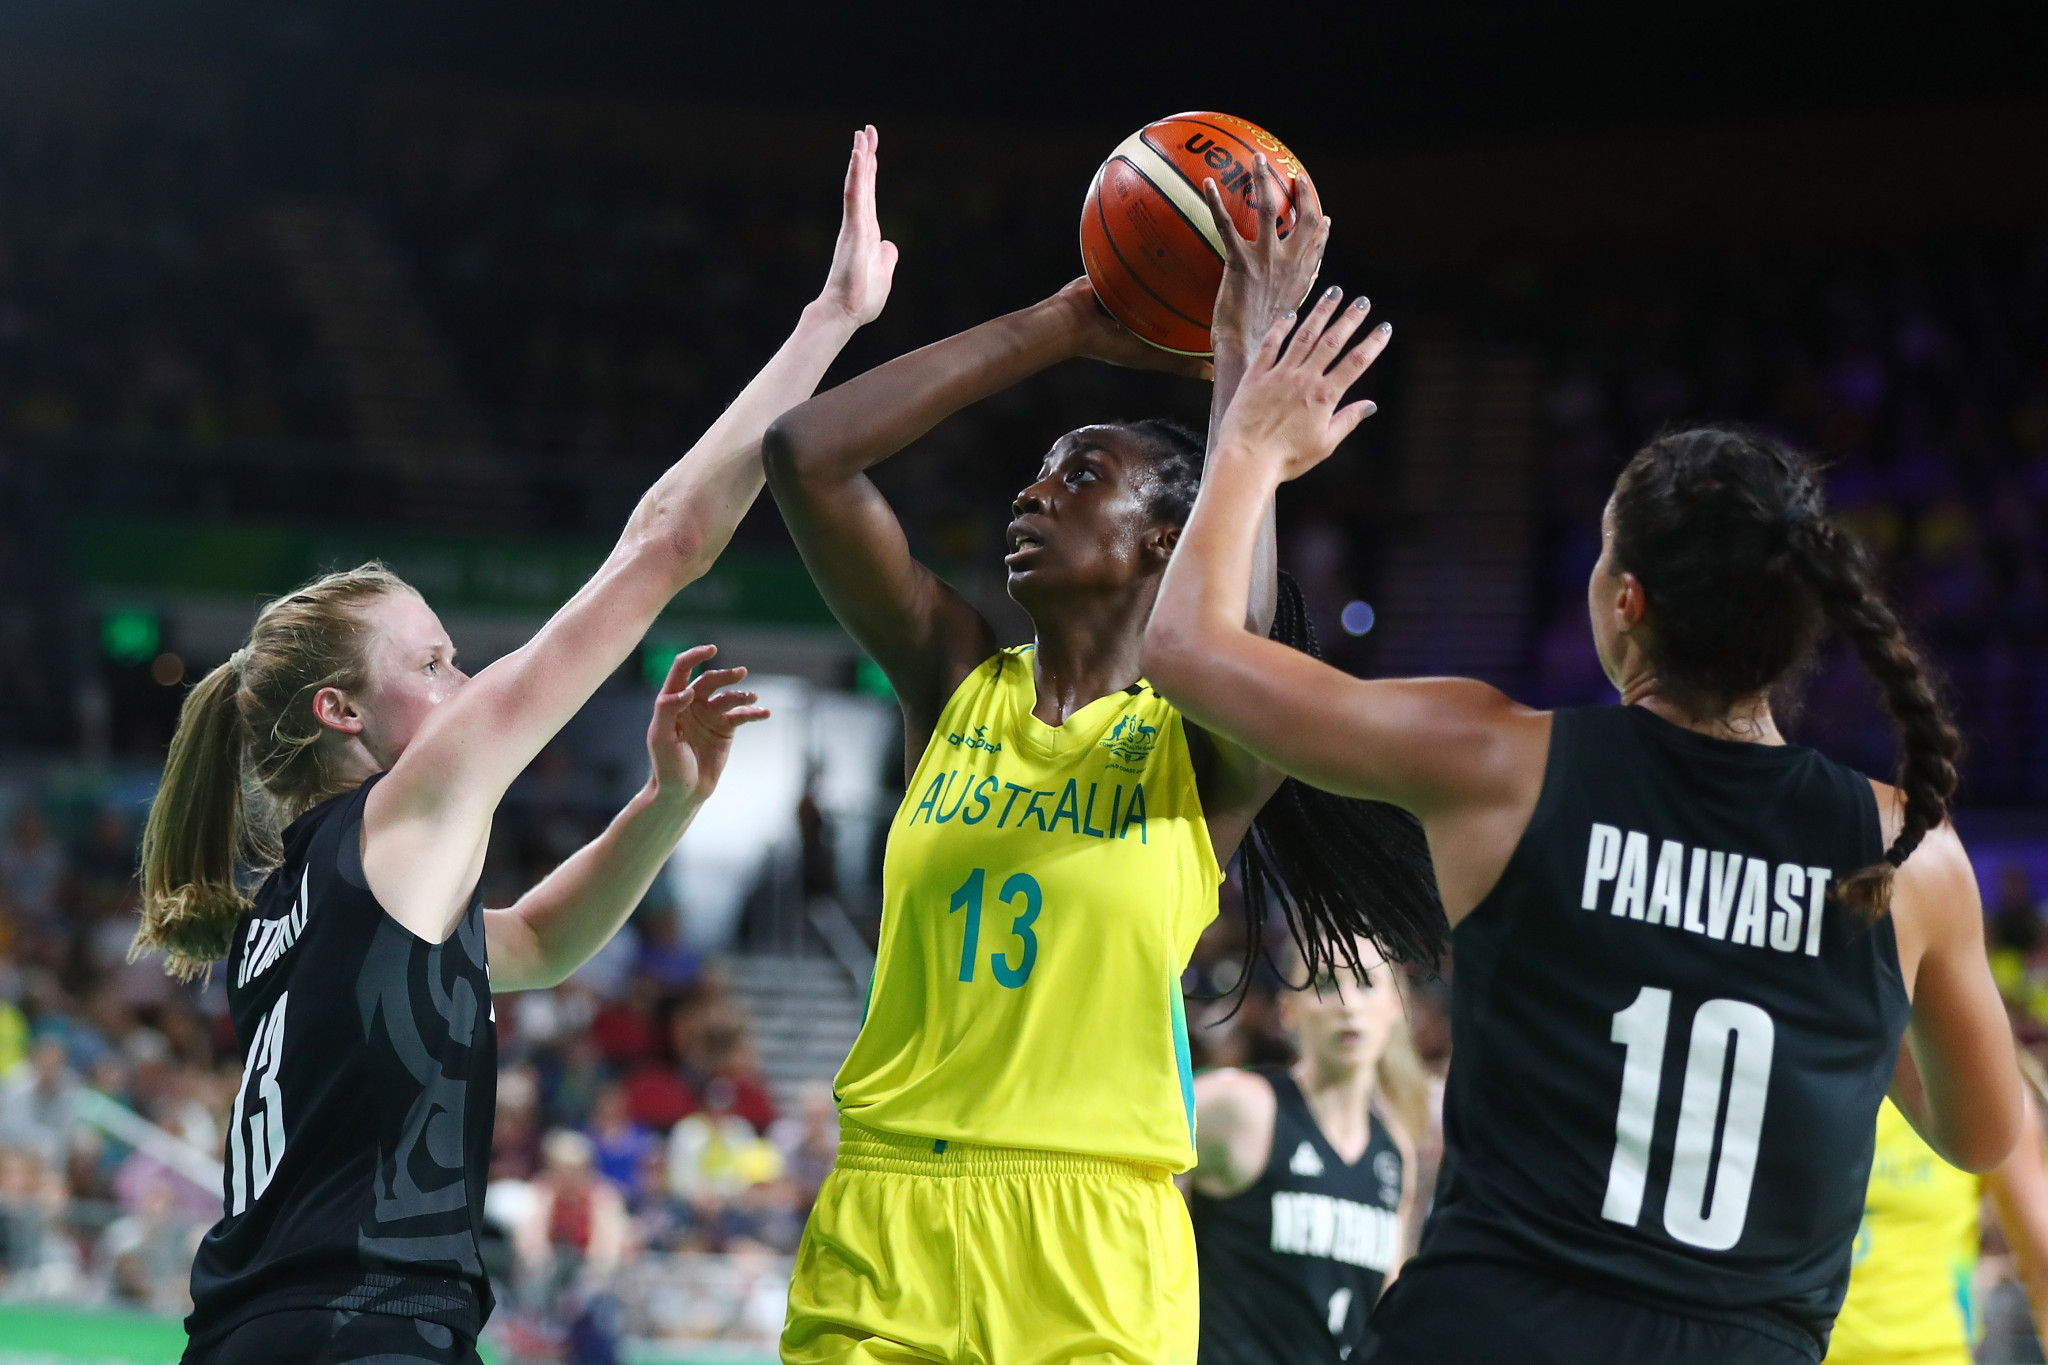 Ezi Magbegor has been selected to compete in Australia's women's basketball team at Naples 2019 ©Getty Images